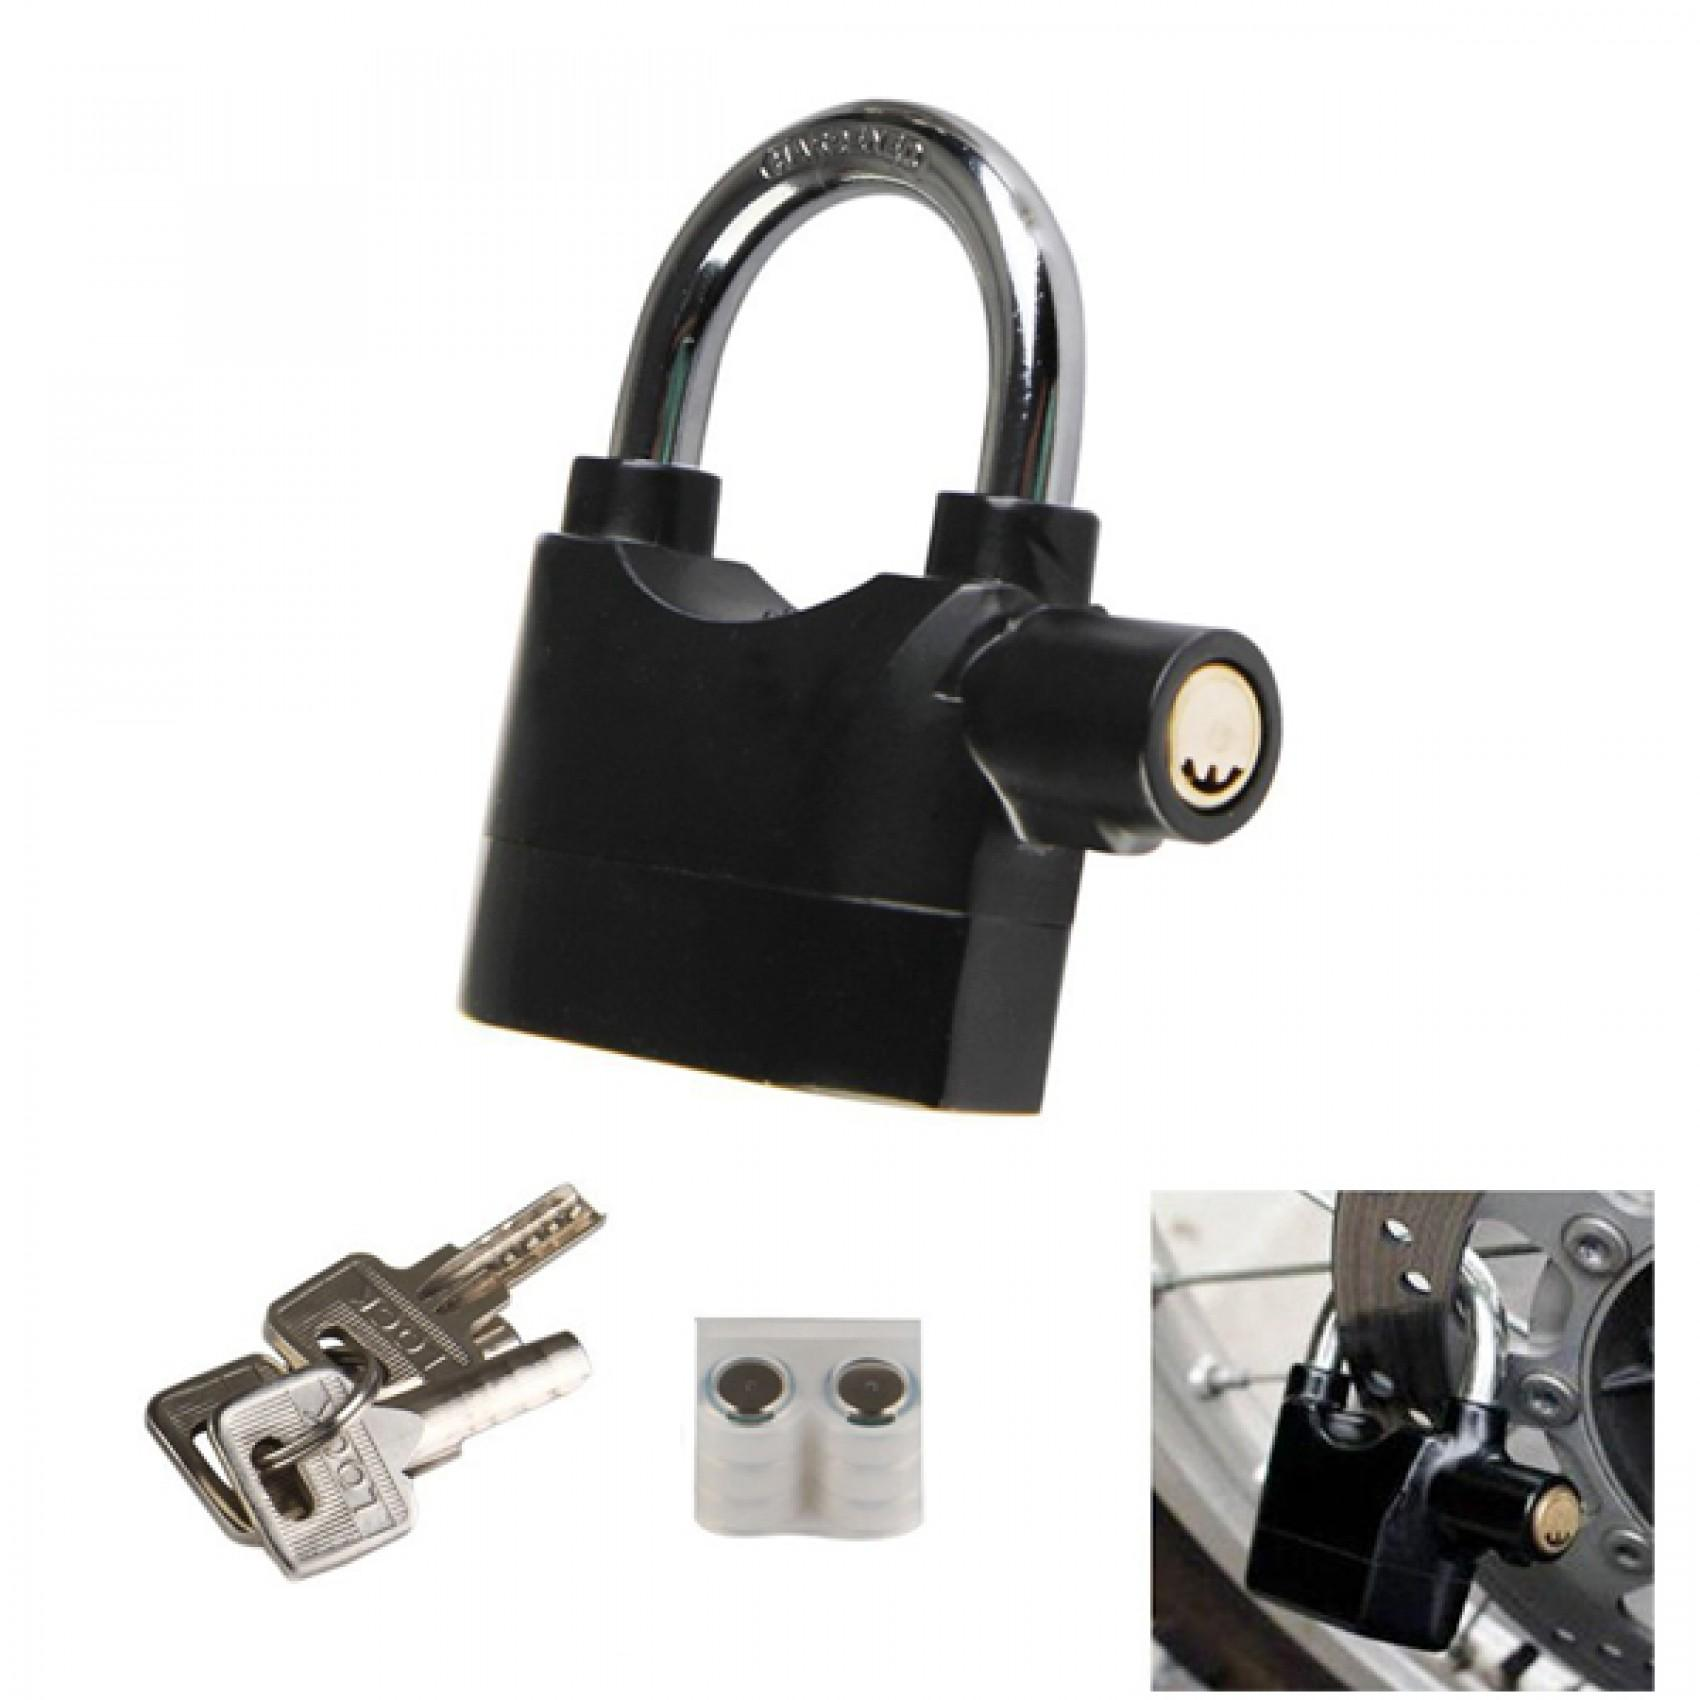 ABS_ABSL Alarm Lock Padlock for Door/Motor/Bike/Car 110db Anti-Theft